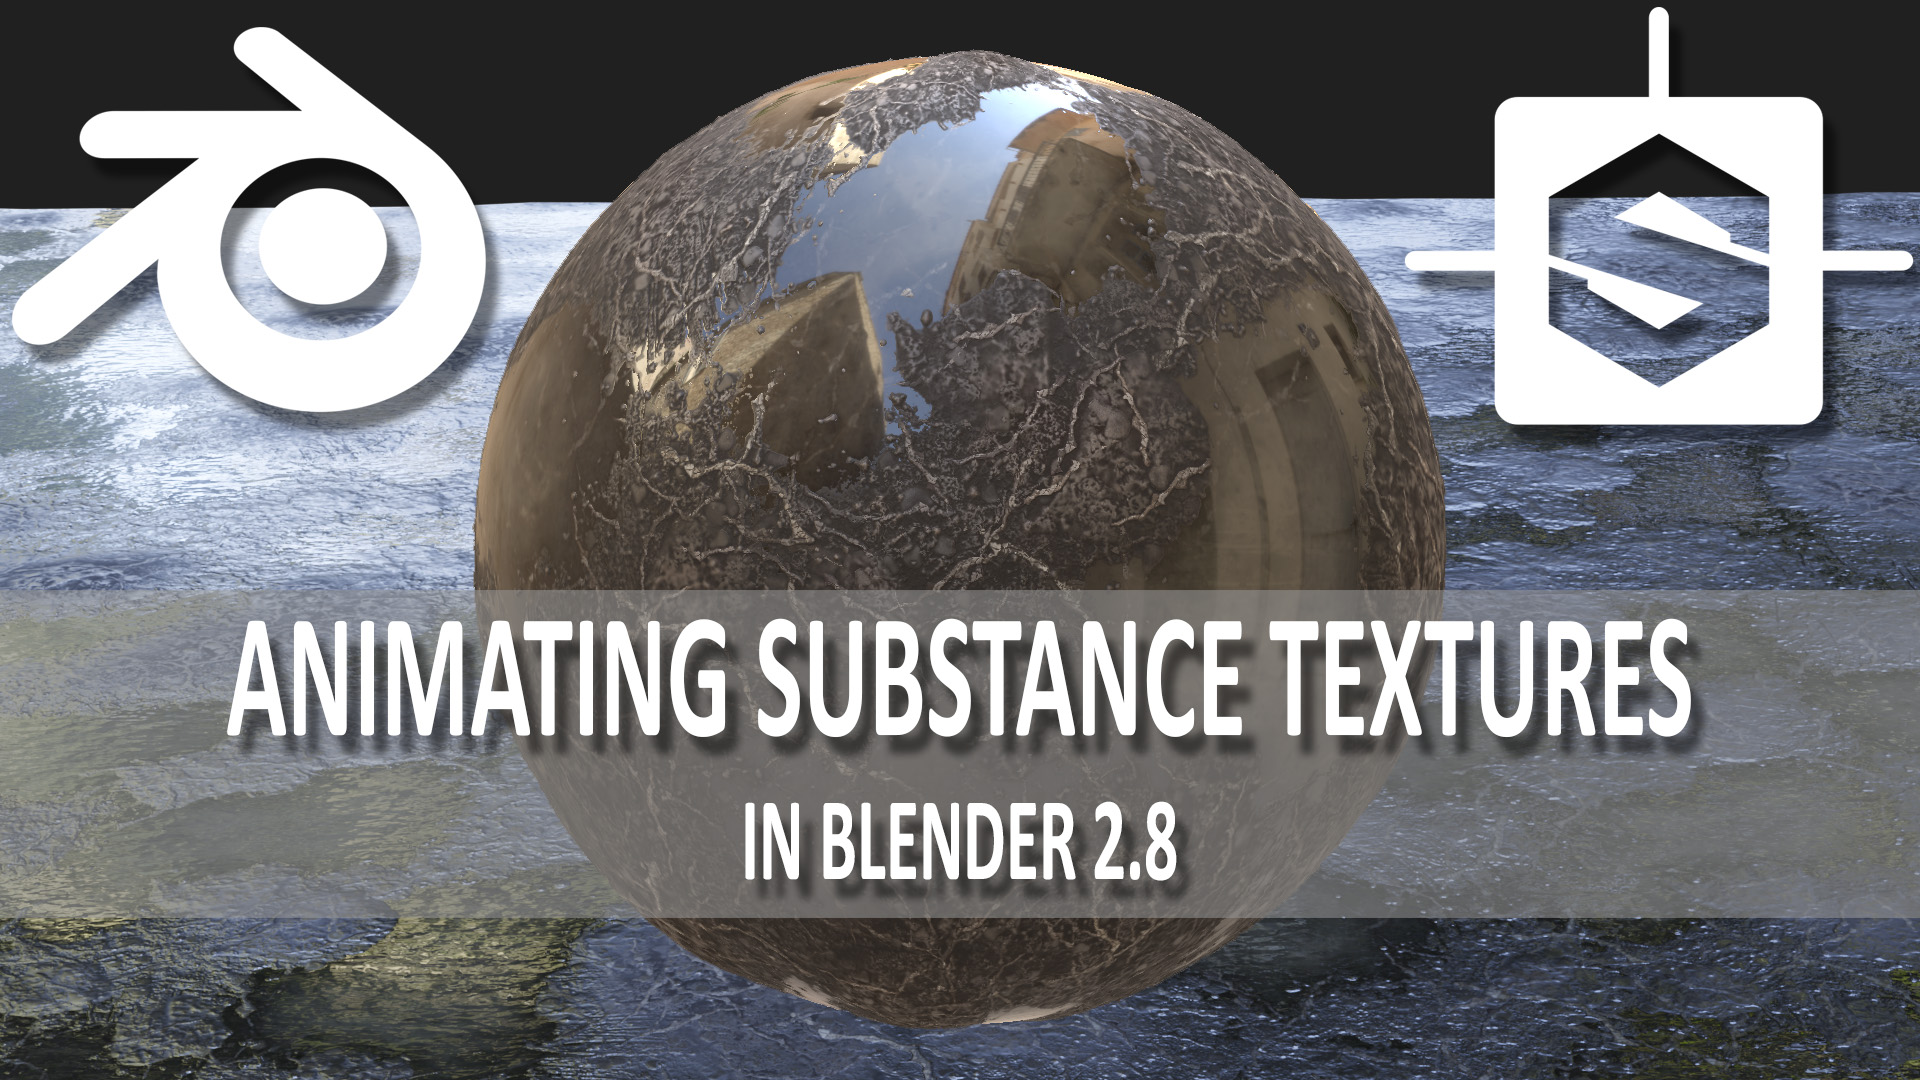 How to Animate Substance Textures in Blender